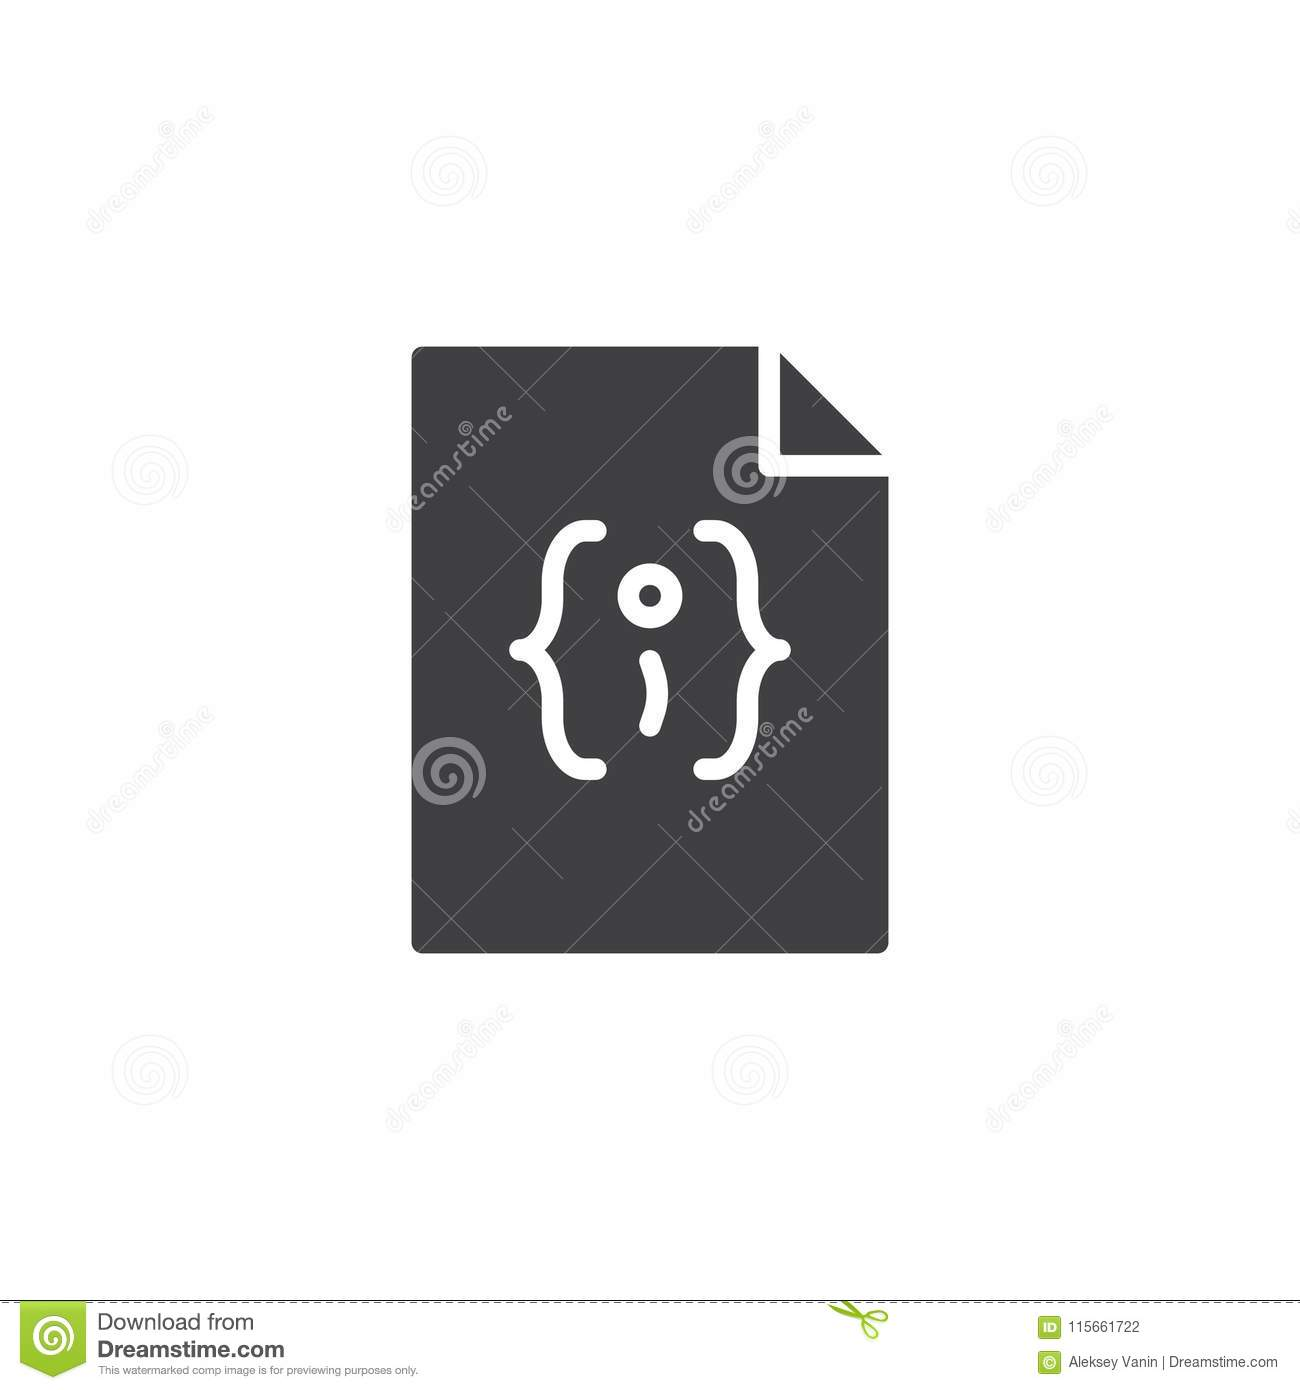 Json File Format Vector Icon Stock Vector - Illustration of